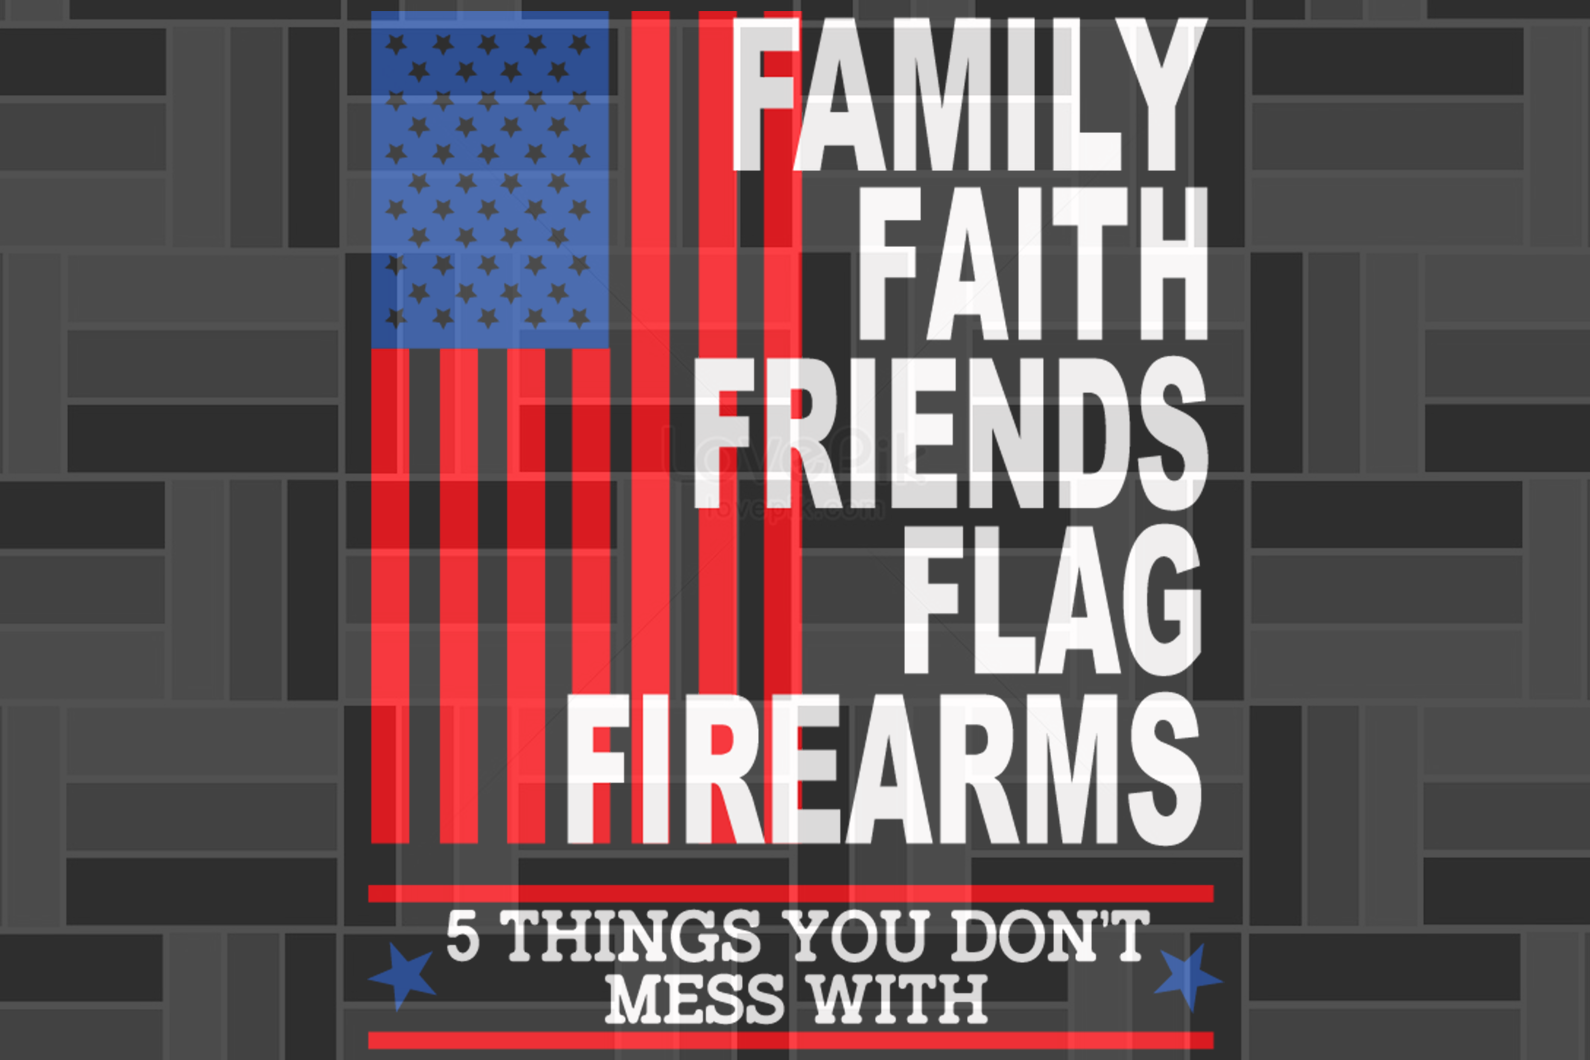 Family faith friends flag firearms SVG EPS PNG DXF PDF